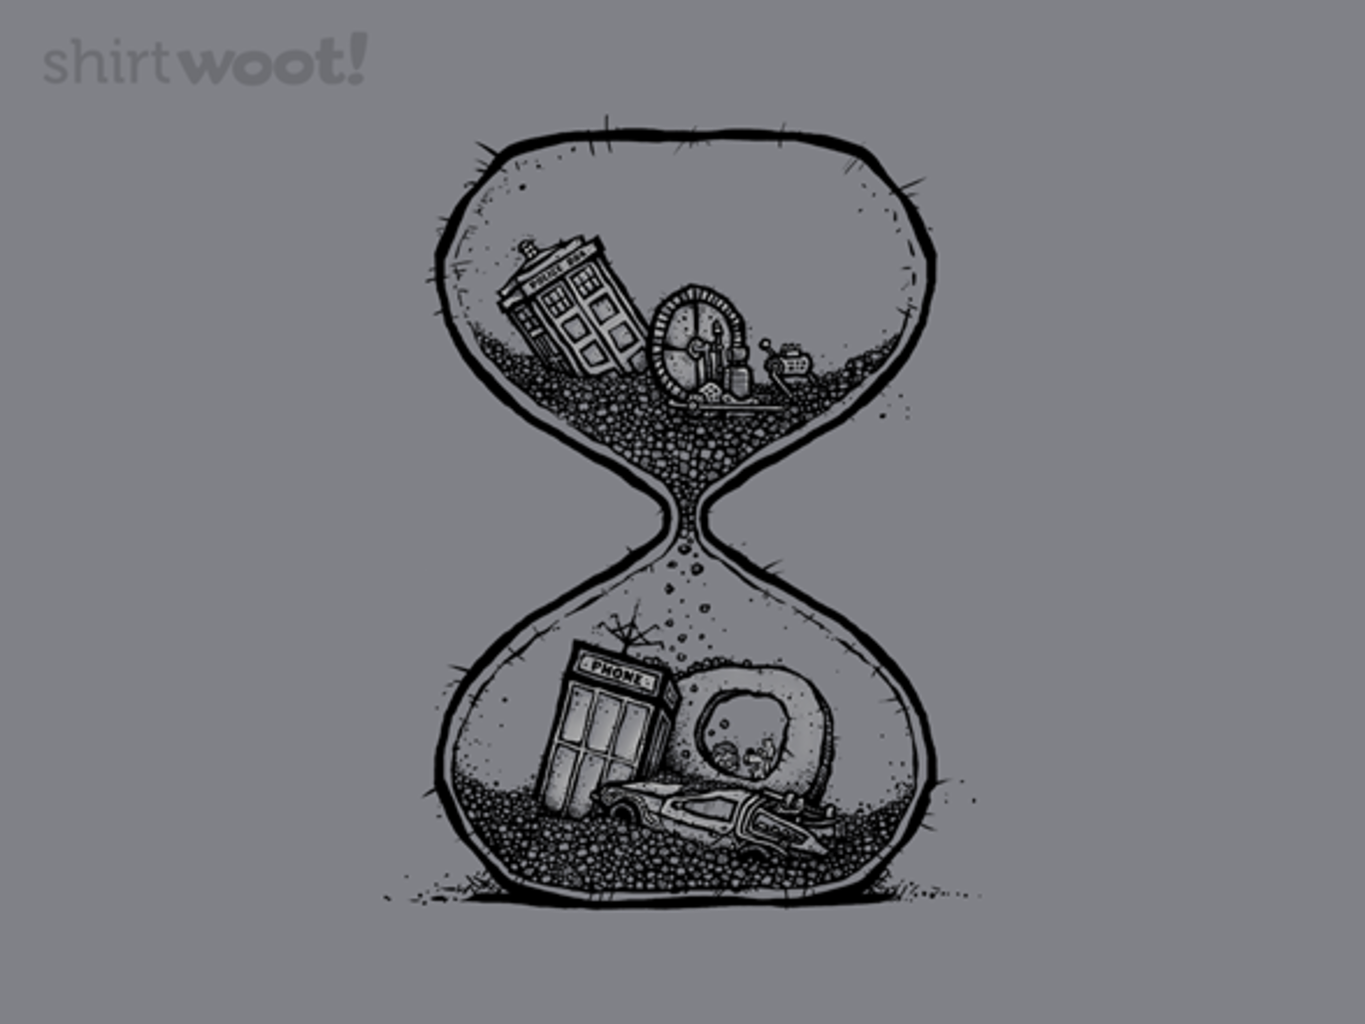 Woot!: A Loop in Time